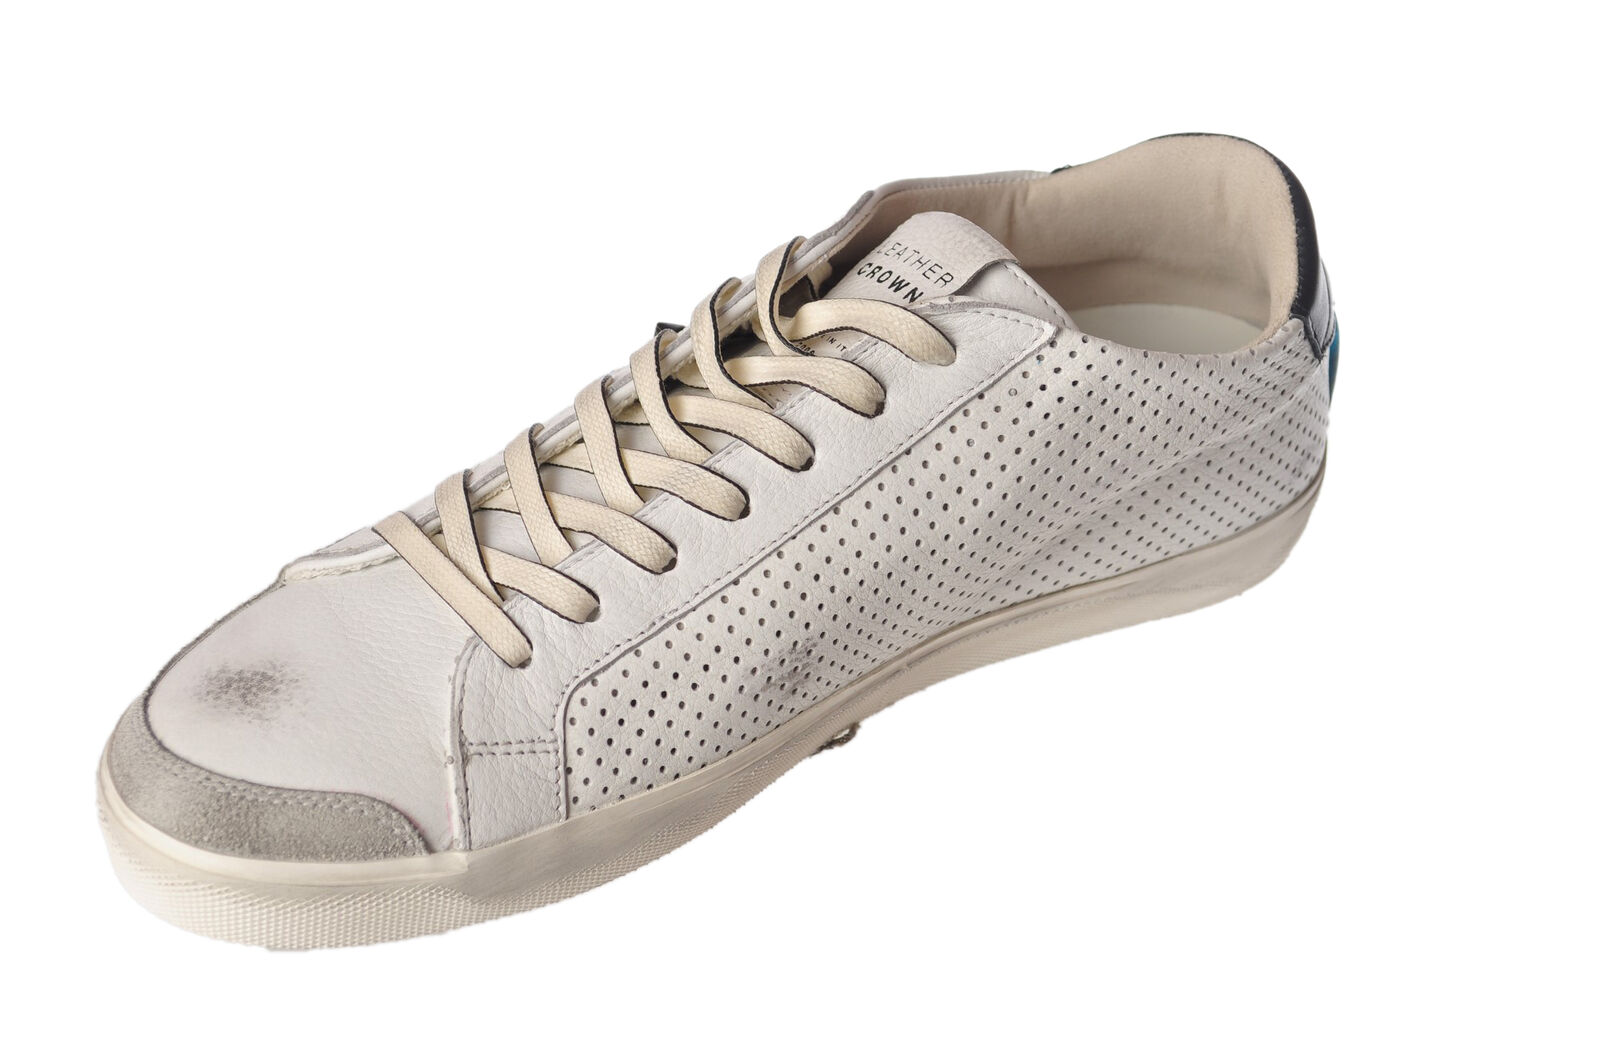 Scarpe casual da uomo  Leather Crown - Shoes-Sneakers low - Man - White - 4751722B182833